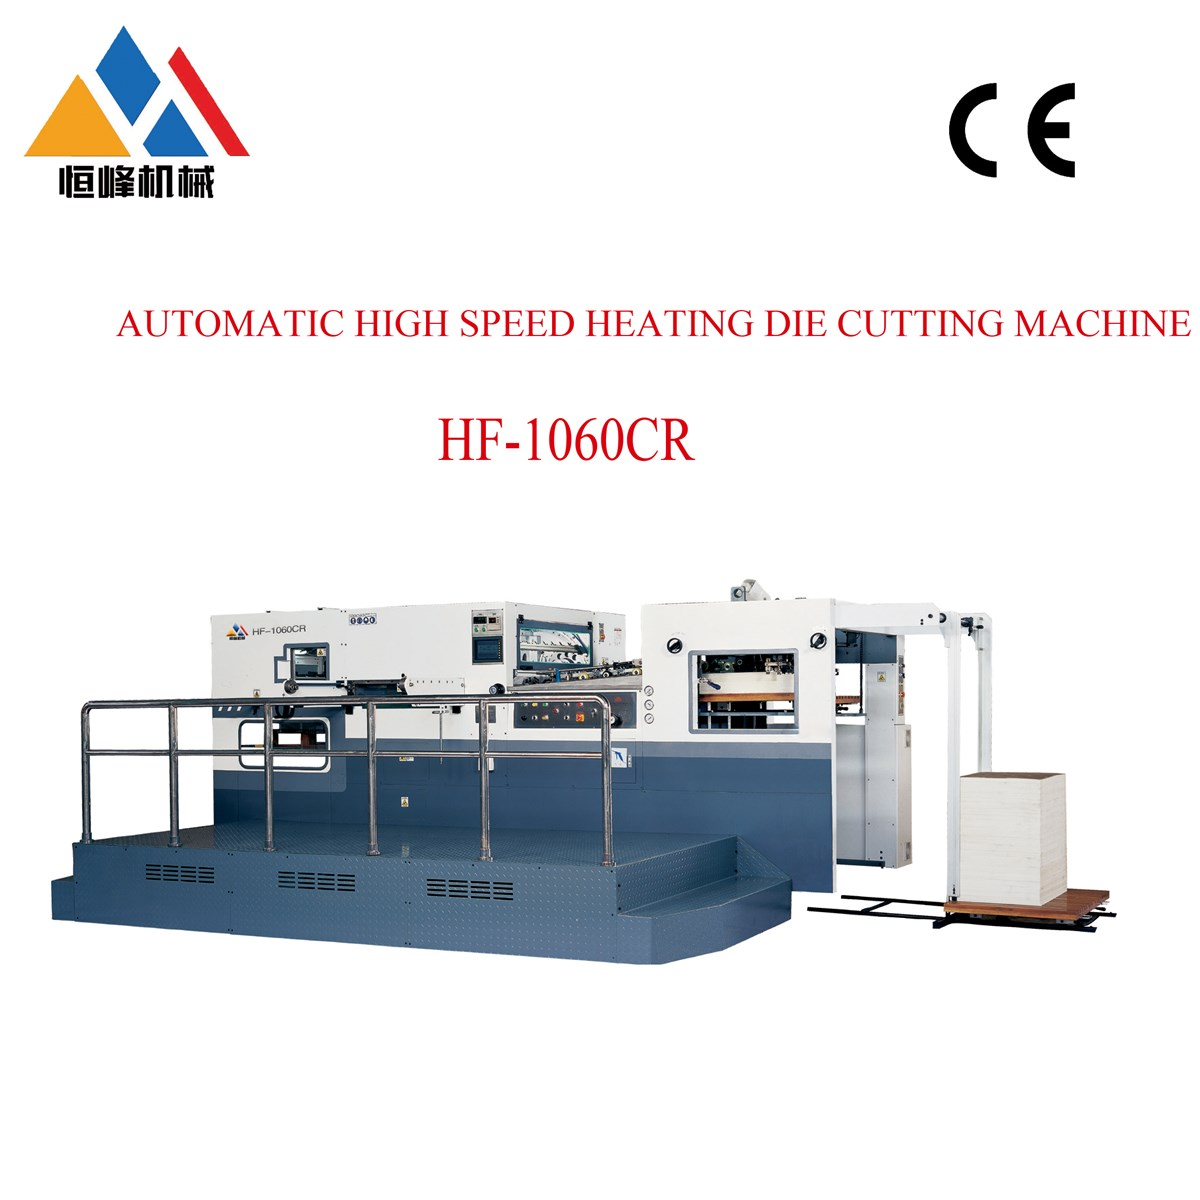 Automatic High Speed High Pressure Diecutting and Creasing machine with Stripping Unit Diecutter